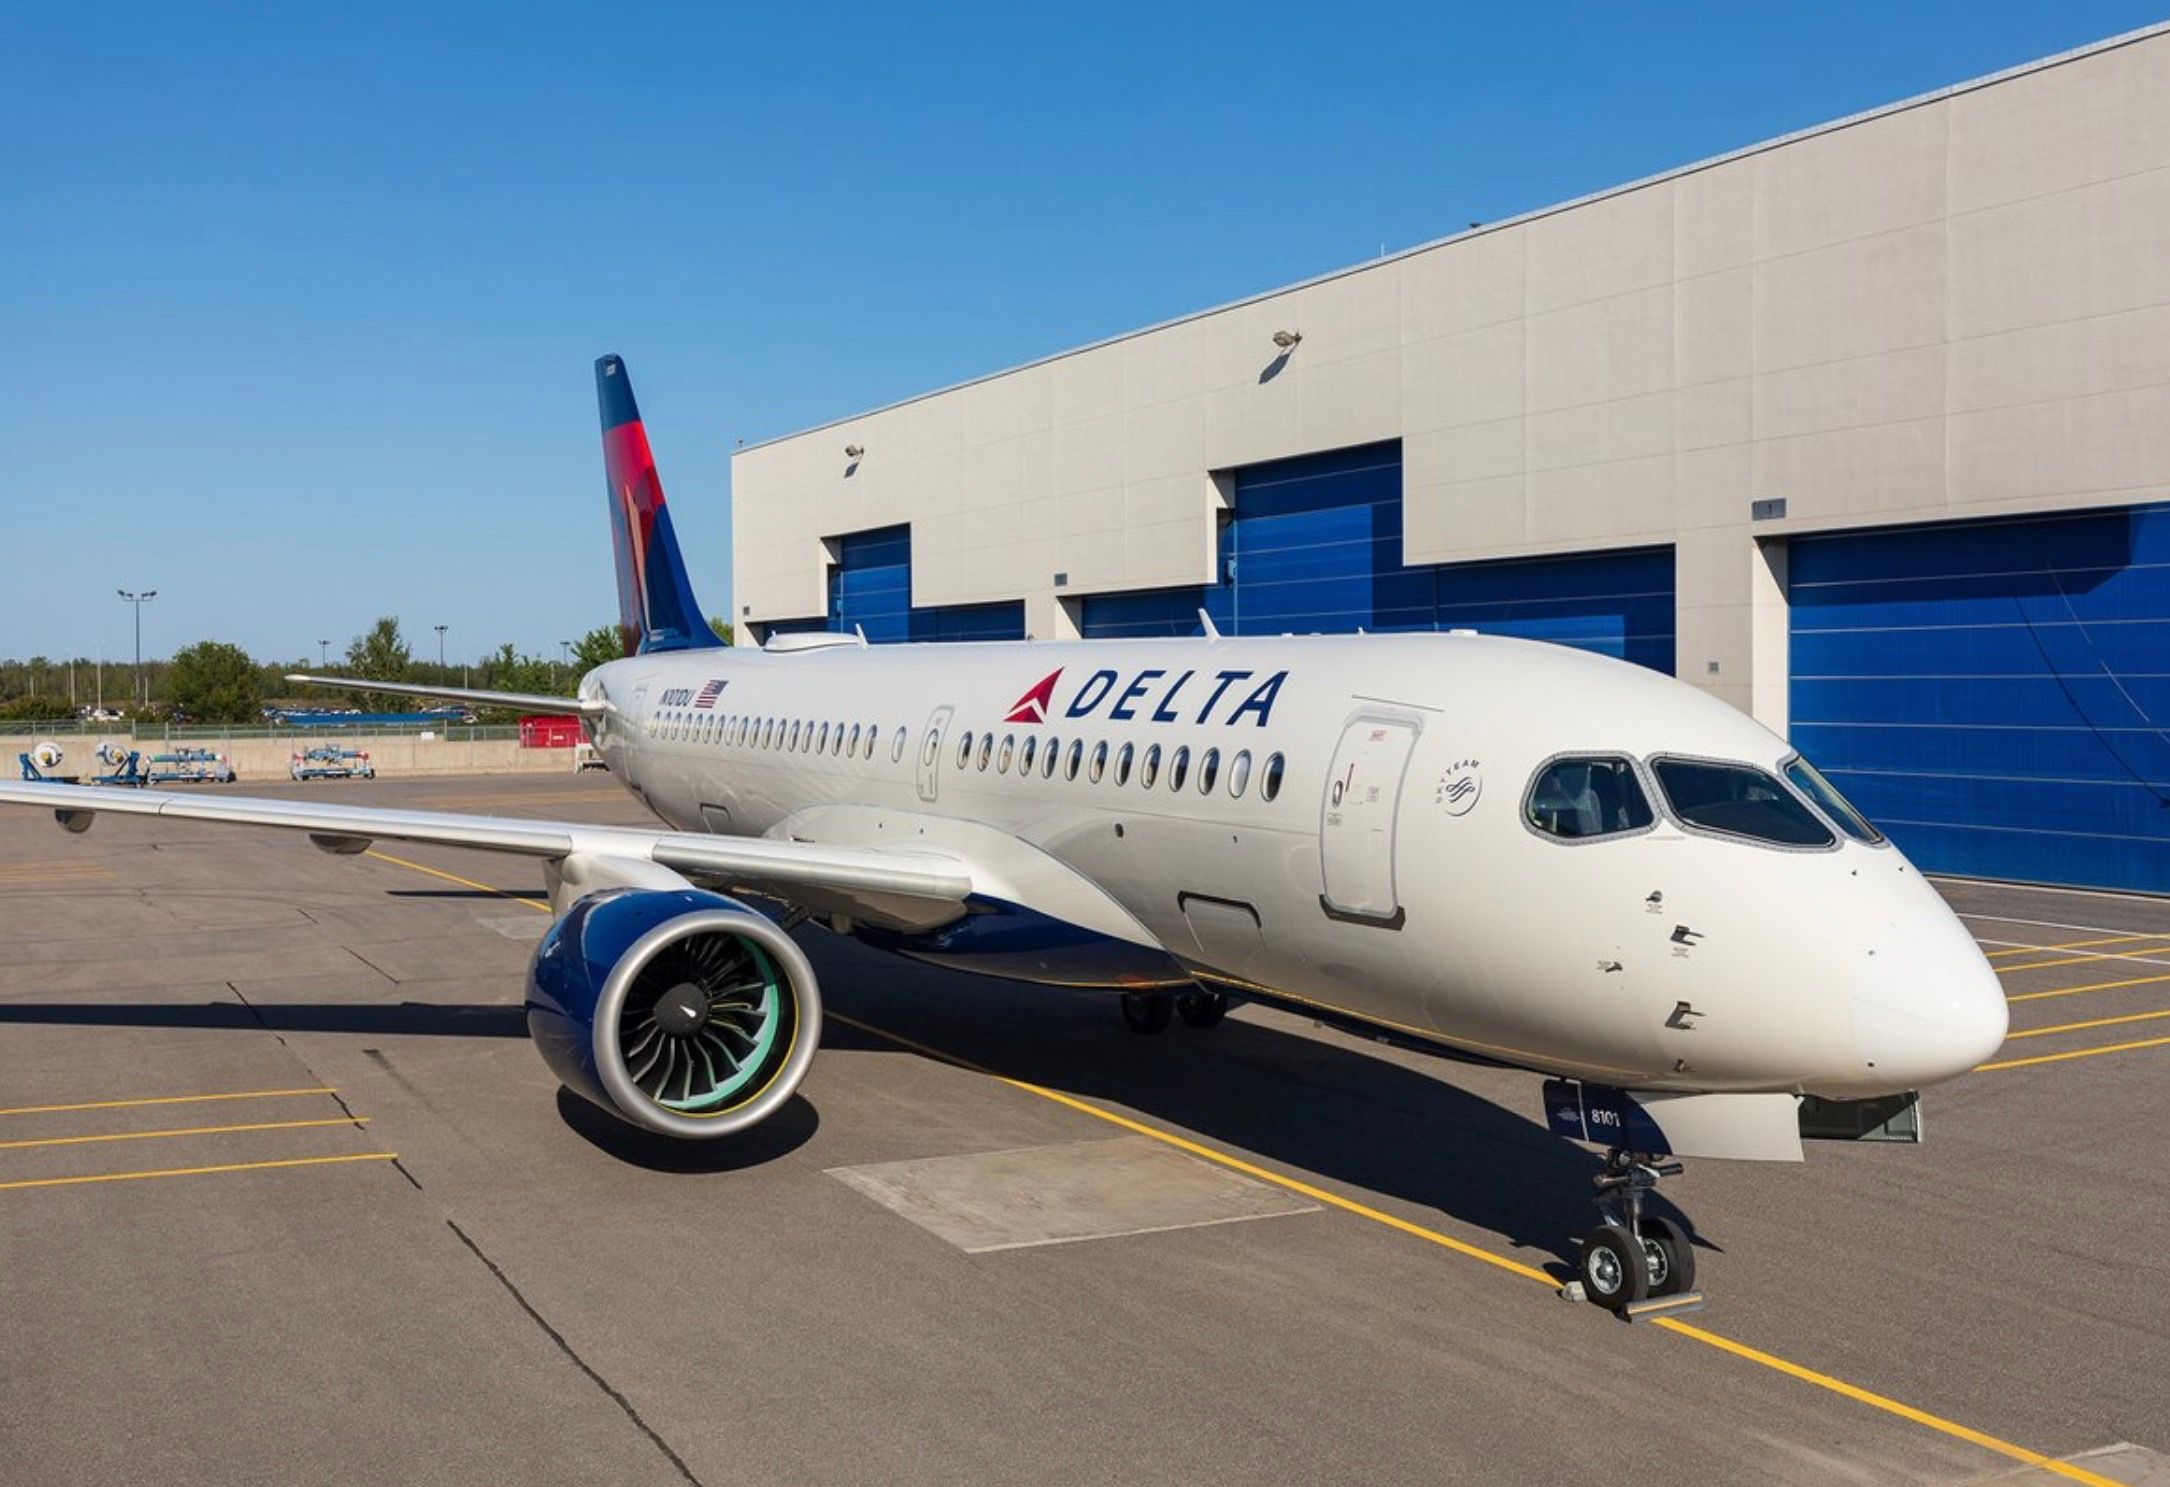 Pin by Is on Delta airlines Aircraft, Book flight